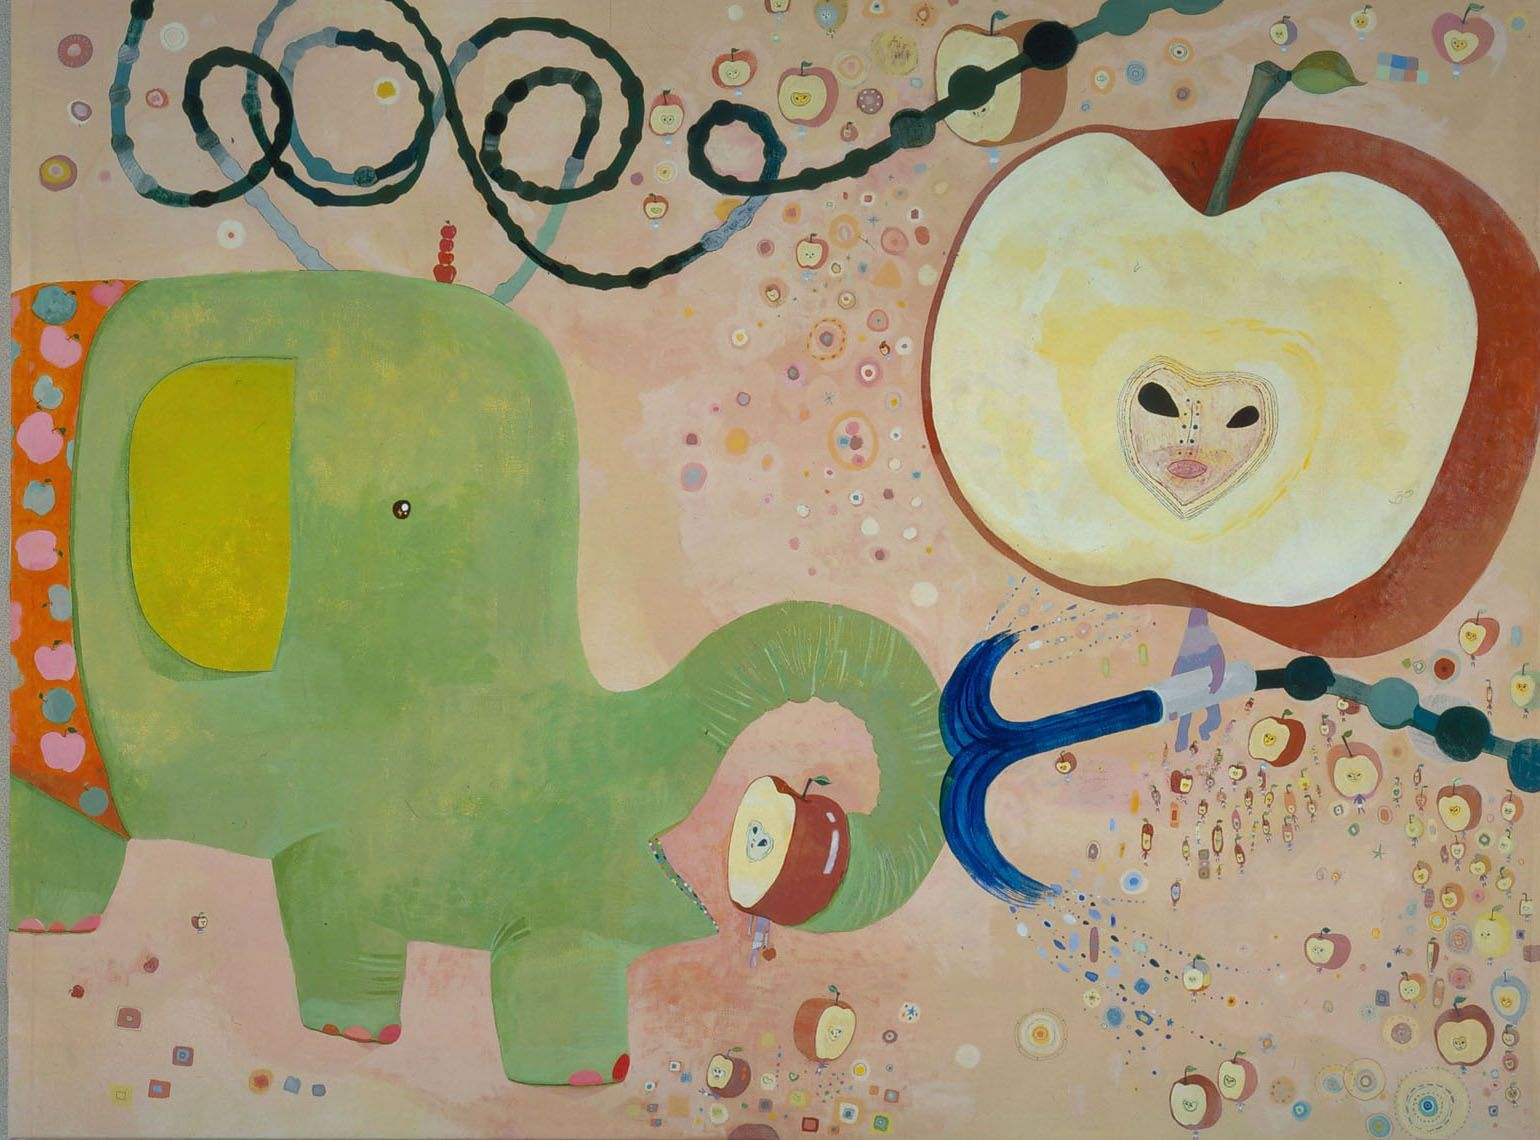 scene with elephant and anthropomorphized apple by chinatsu ban